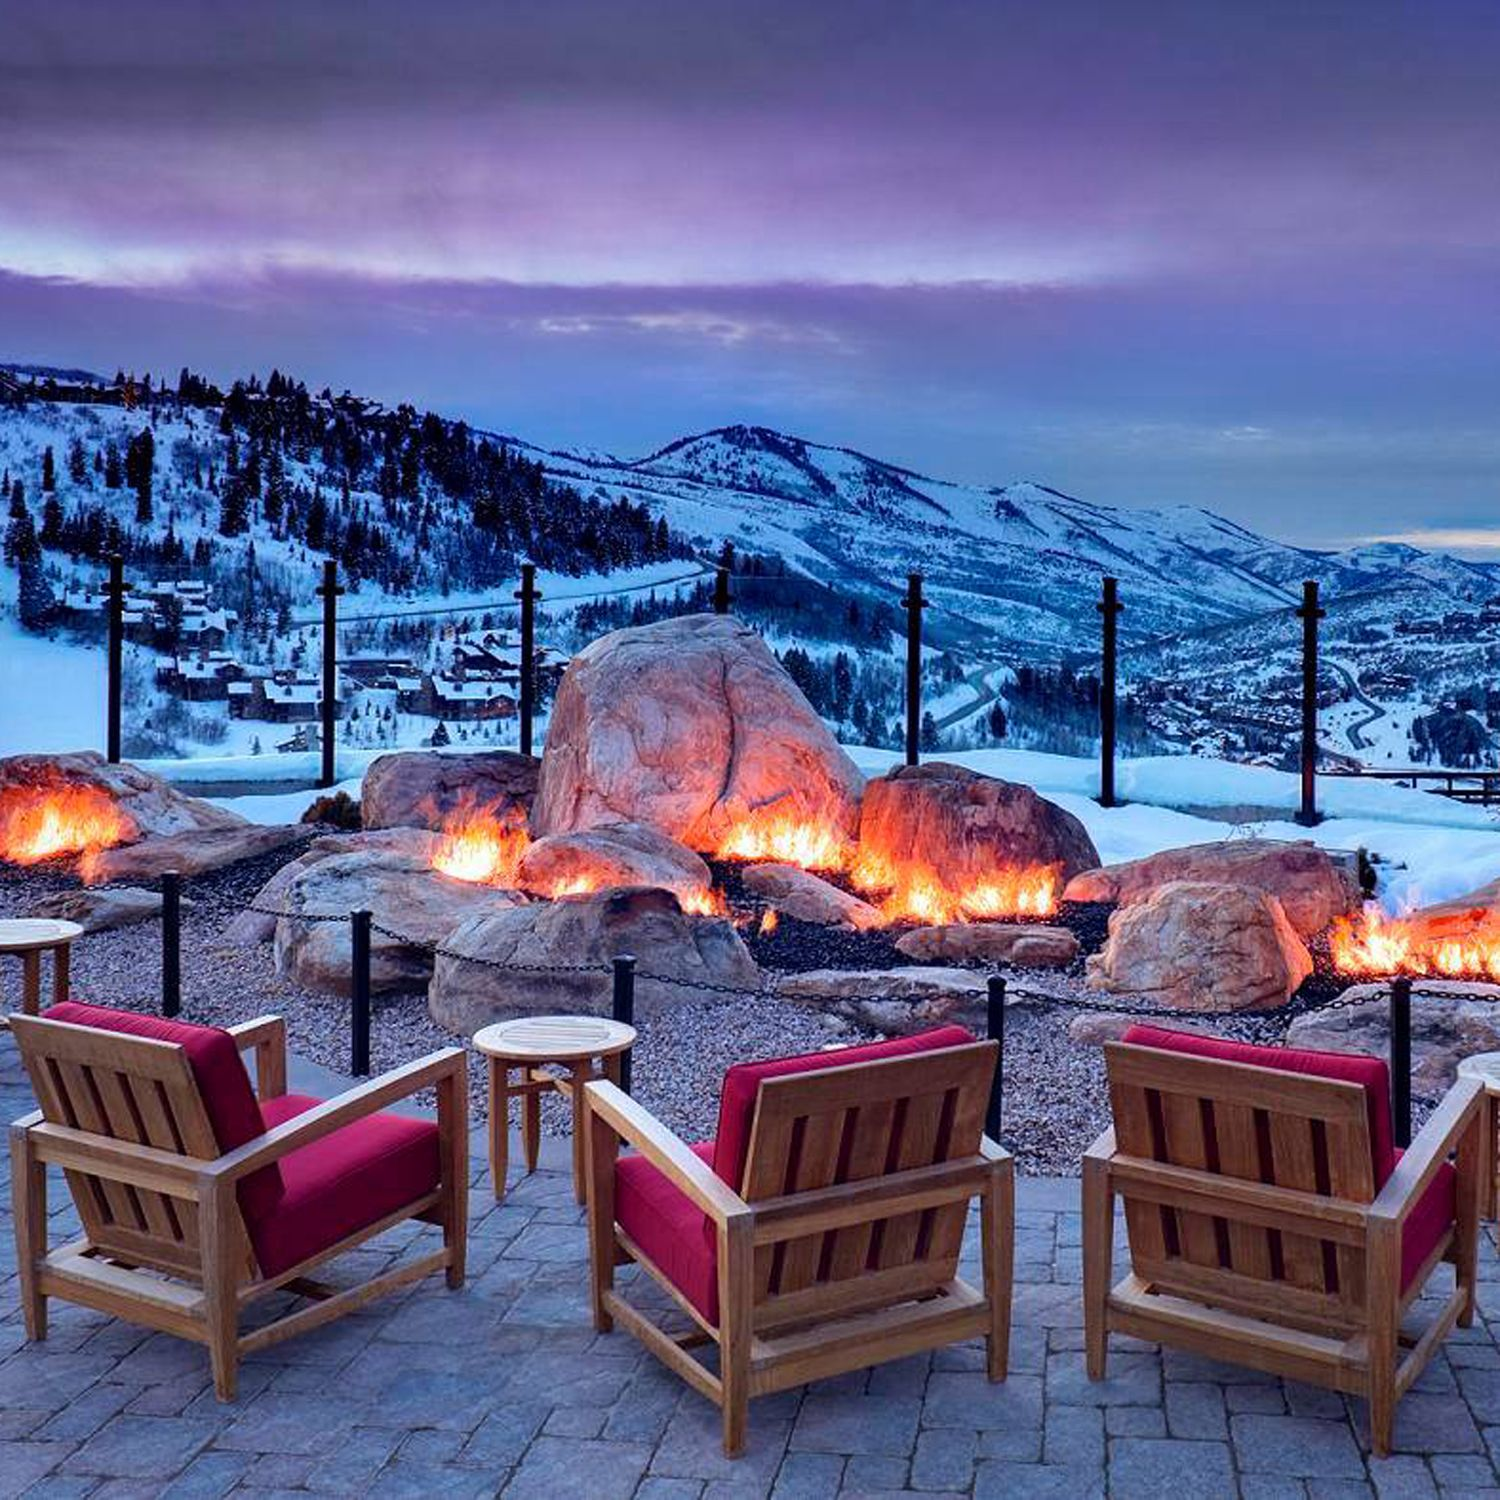 Americas best mountain resorts best winter vacations to take